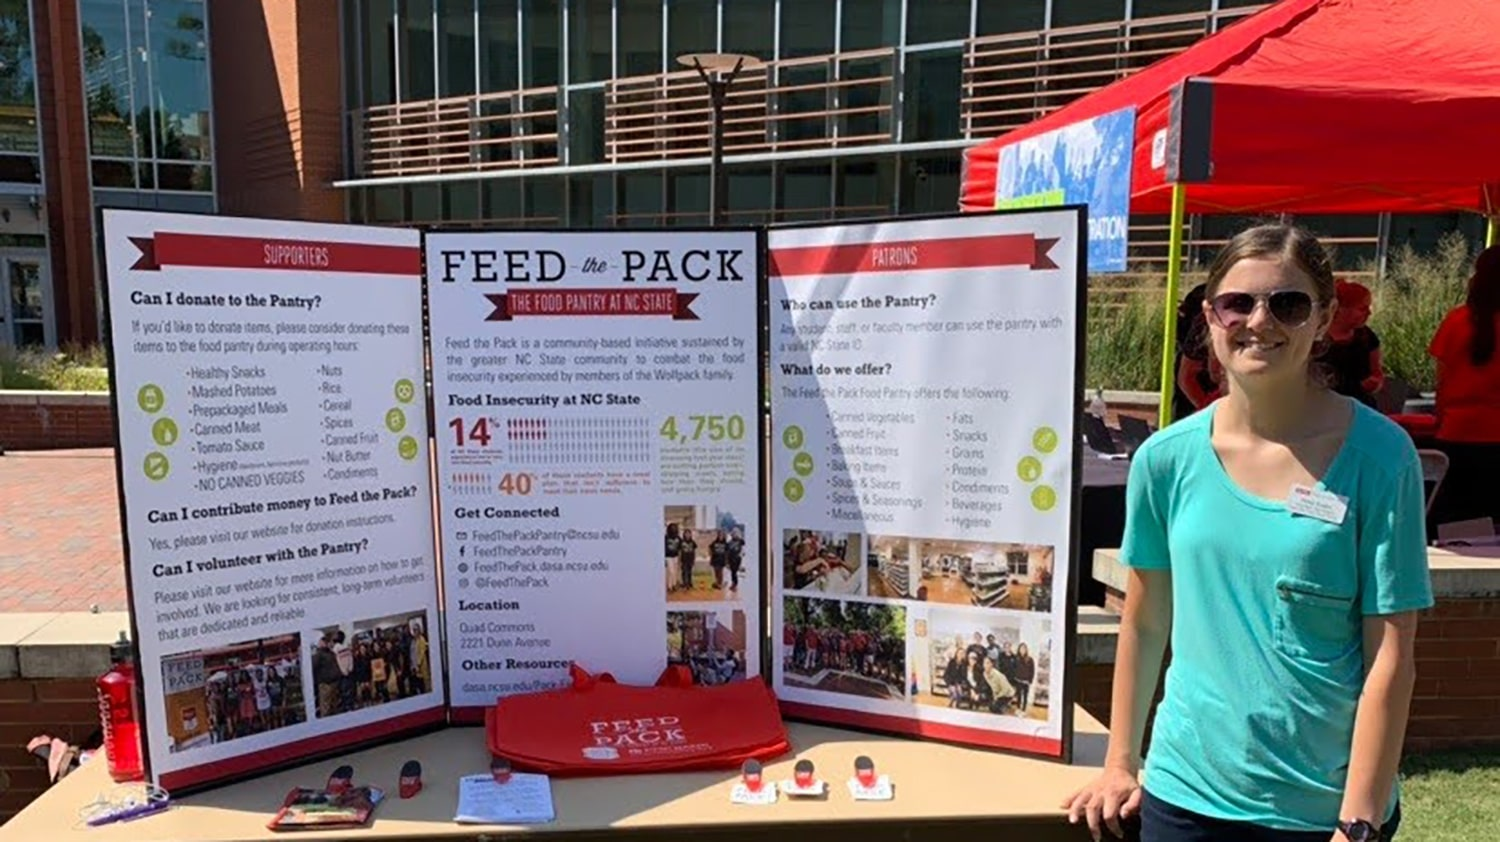 Rose Krebs standing next to a display about Feed the Pack on the Brickyard